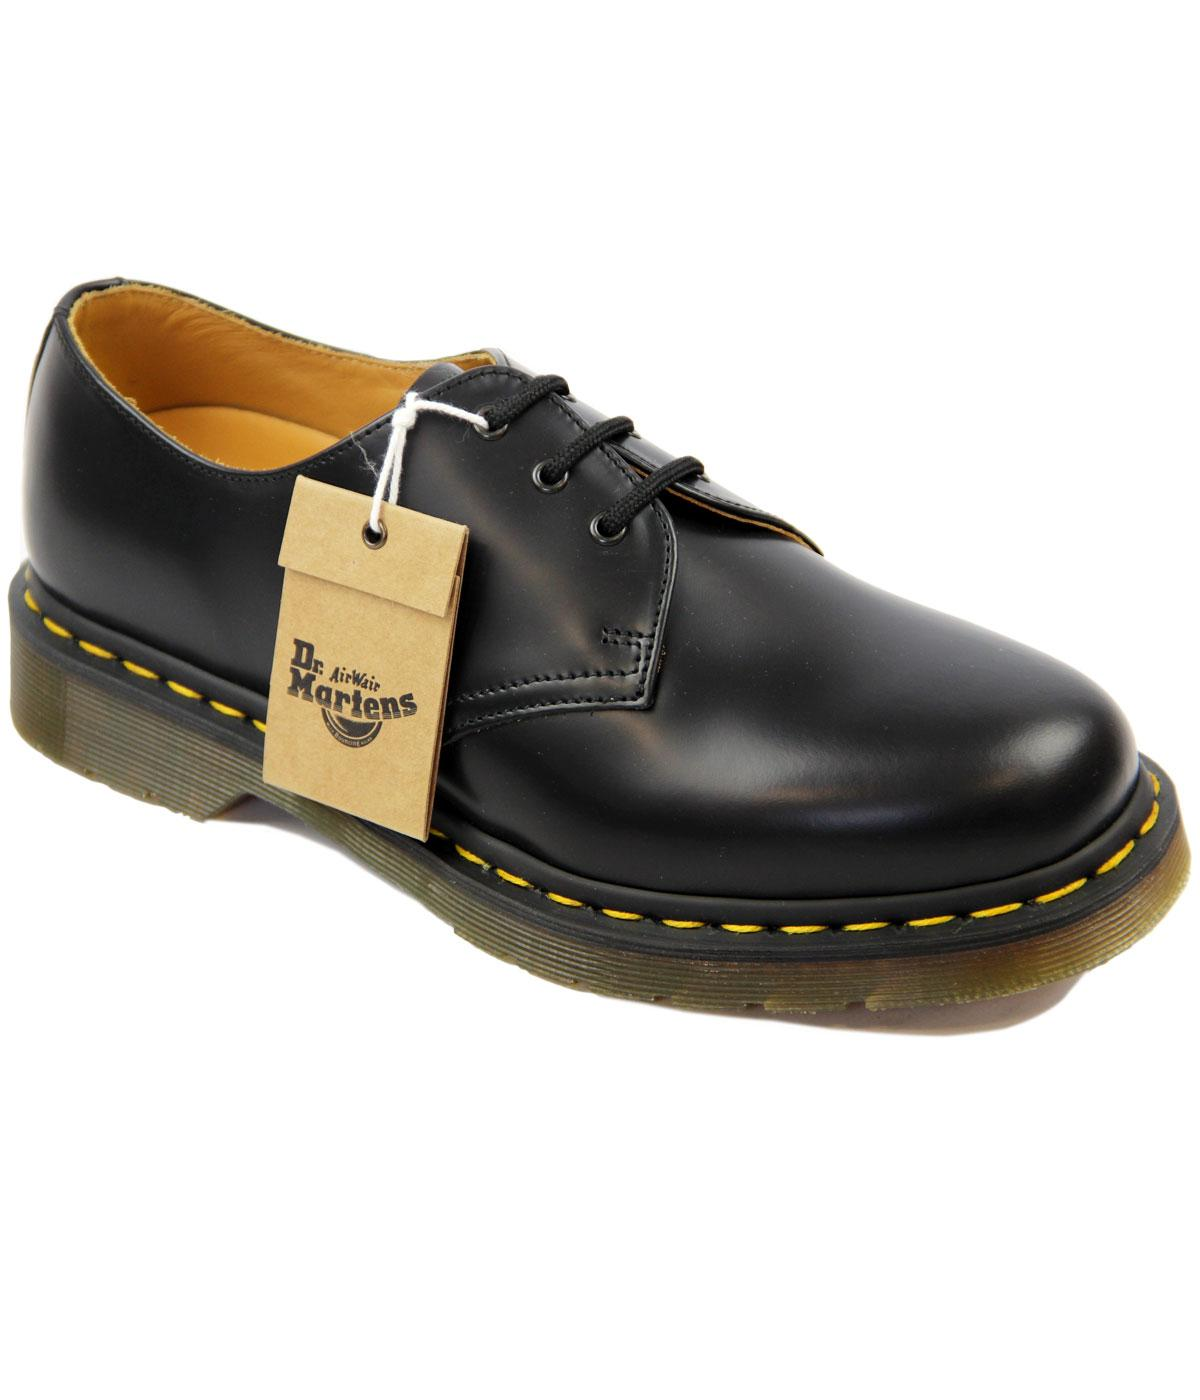 1461 DR MARTENS Retro 60s Black Retro Shoes